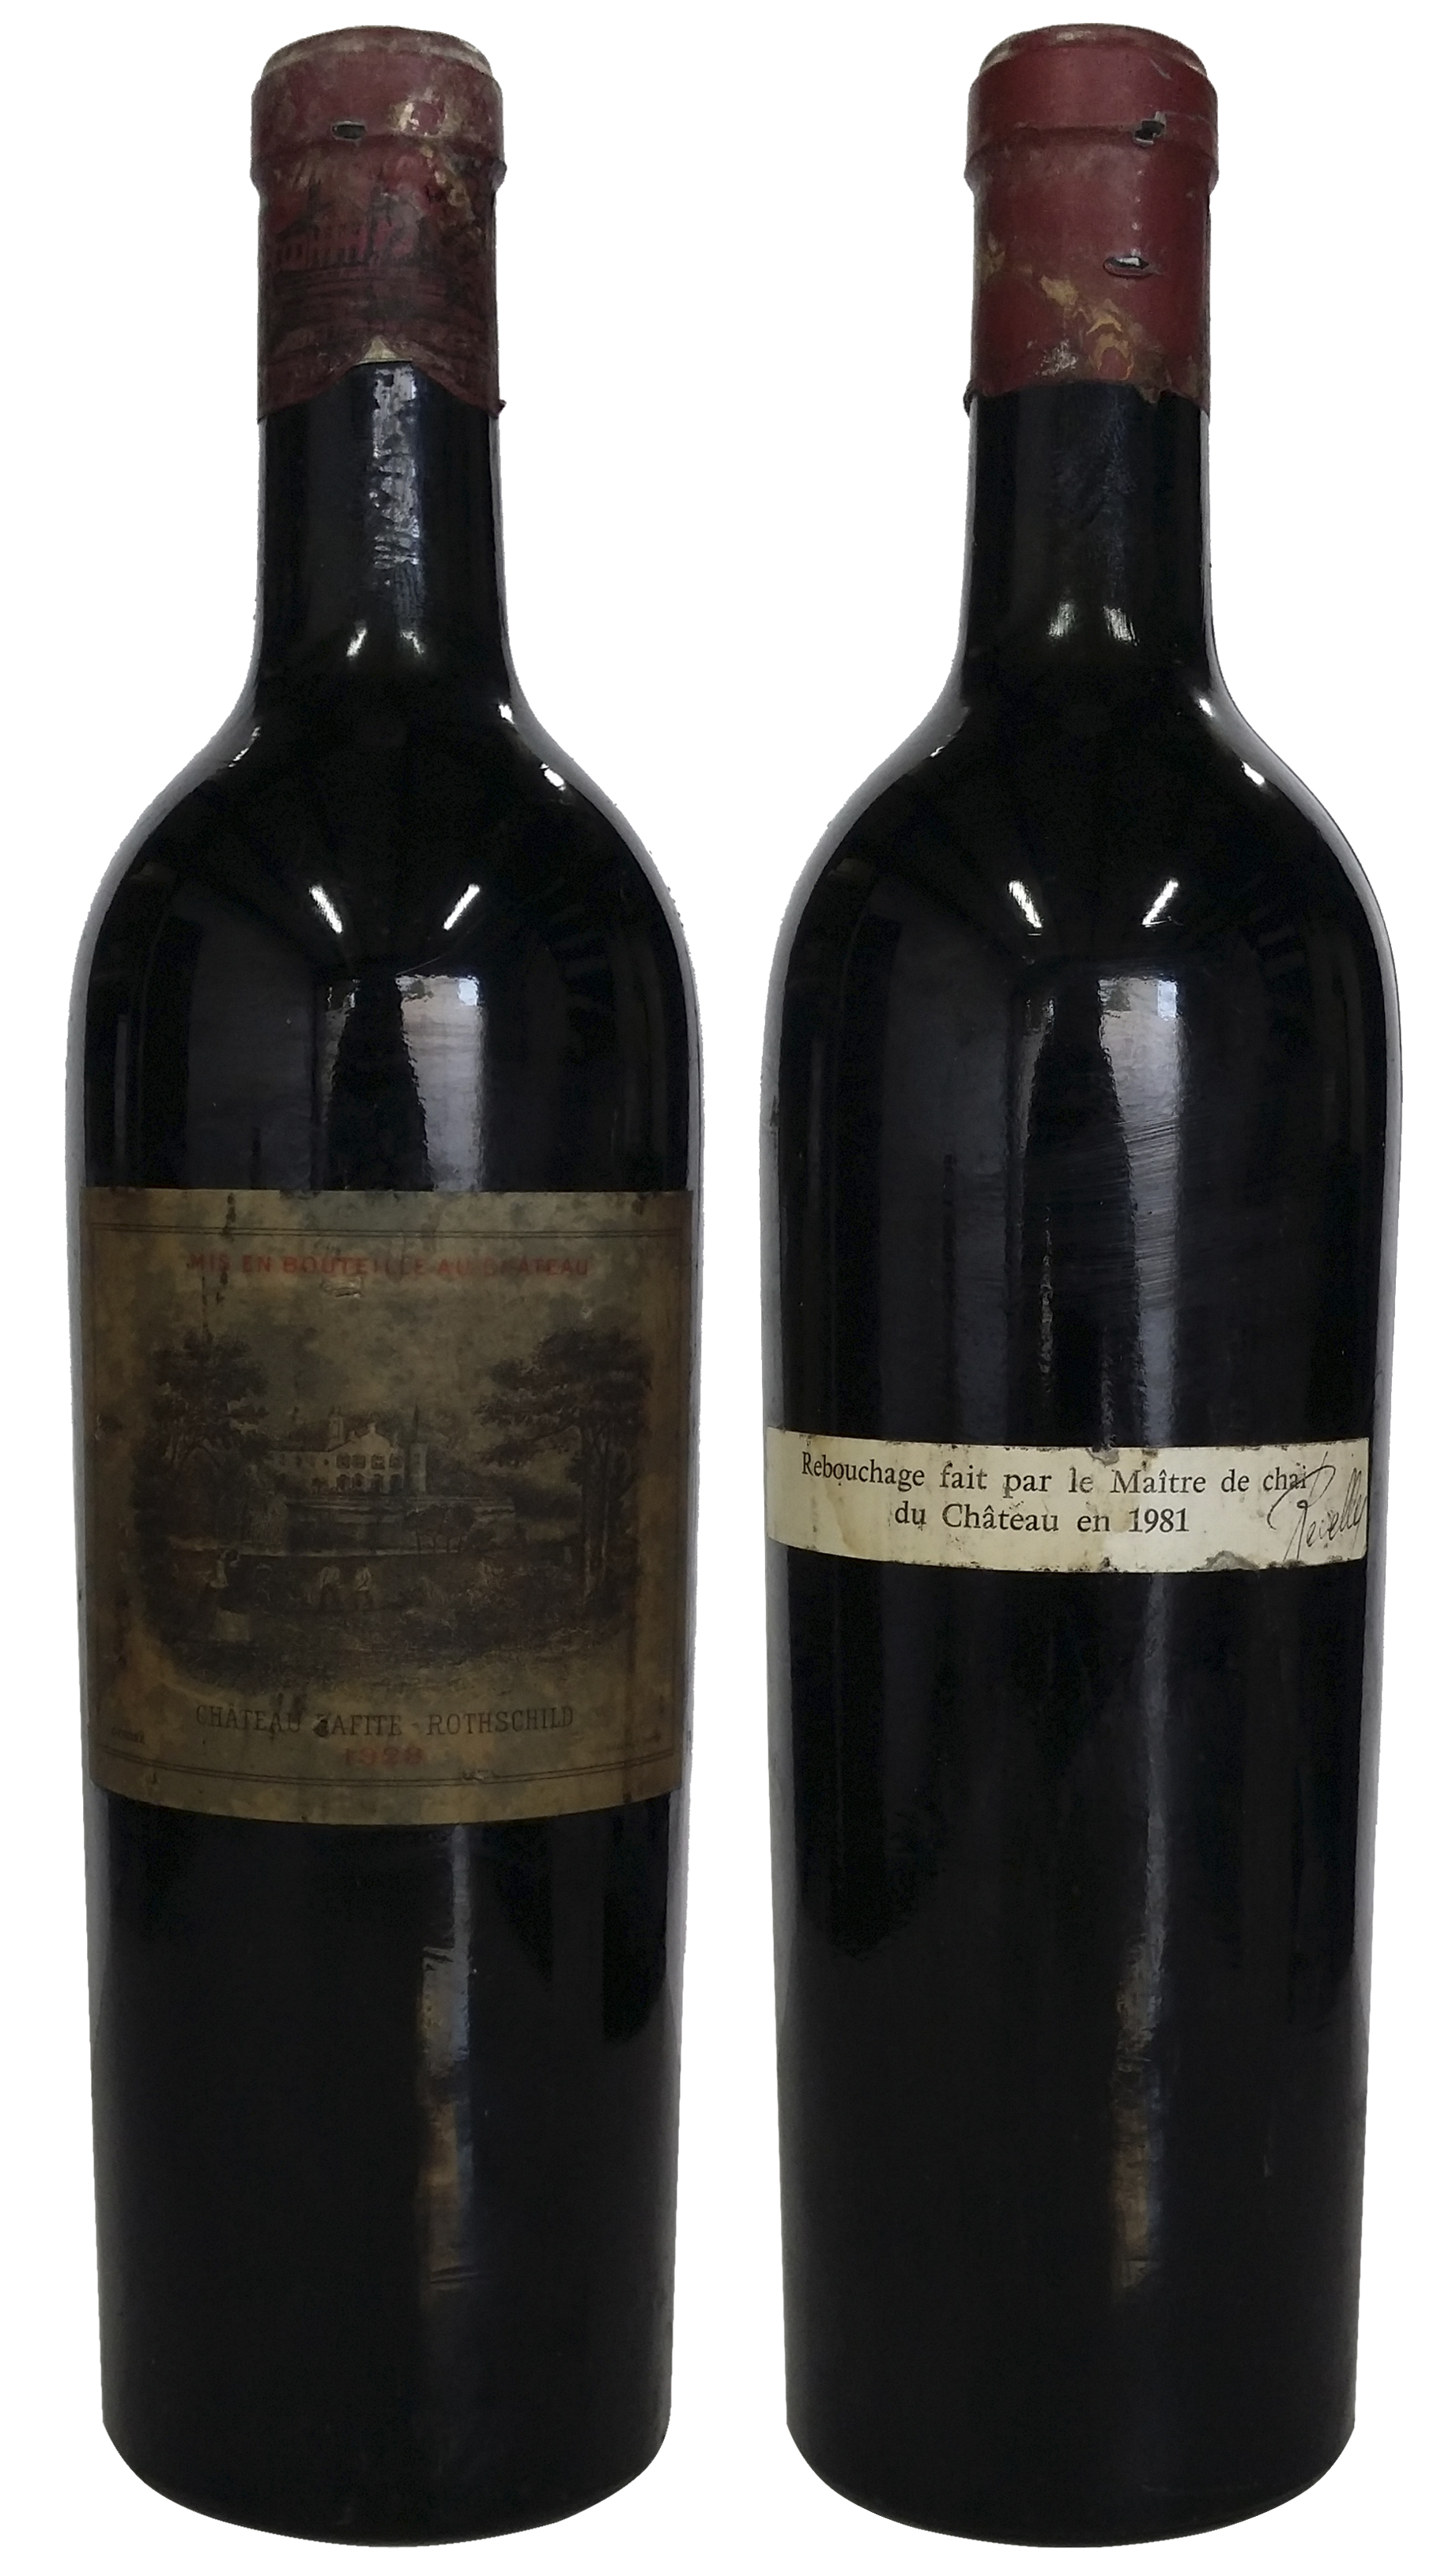 1928 Domaines Barons de Rothschild Chateau Lafite Rothschild